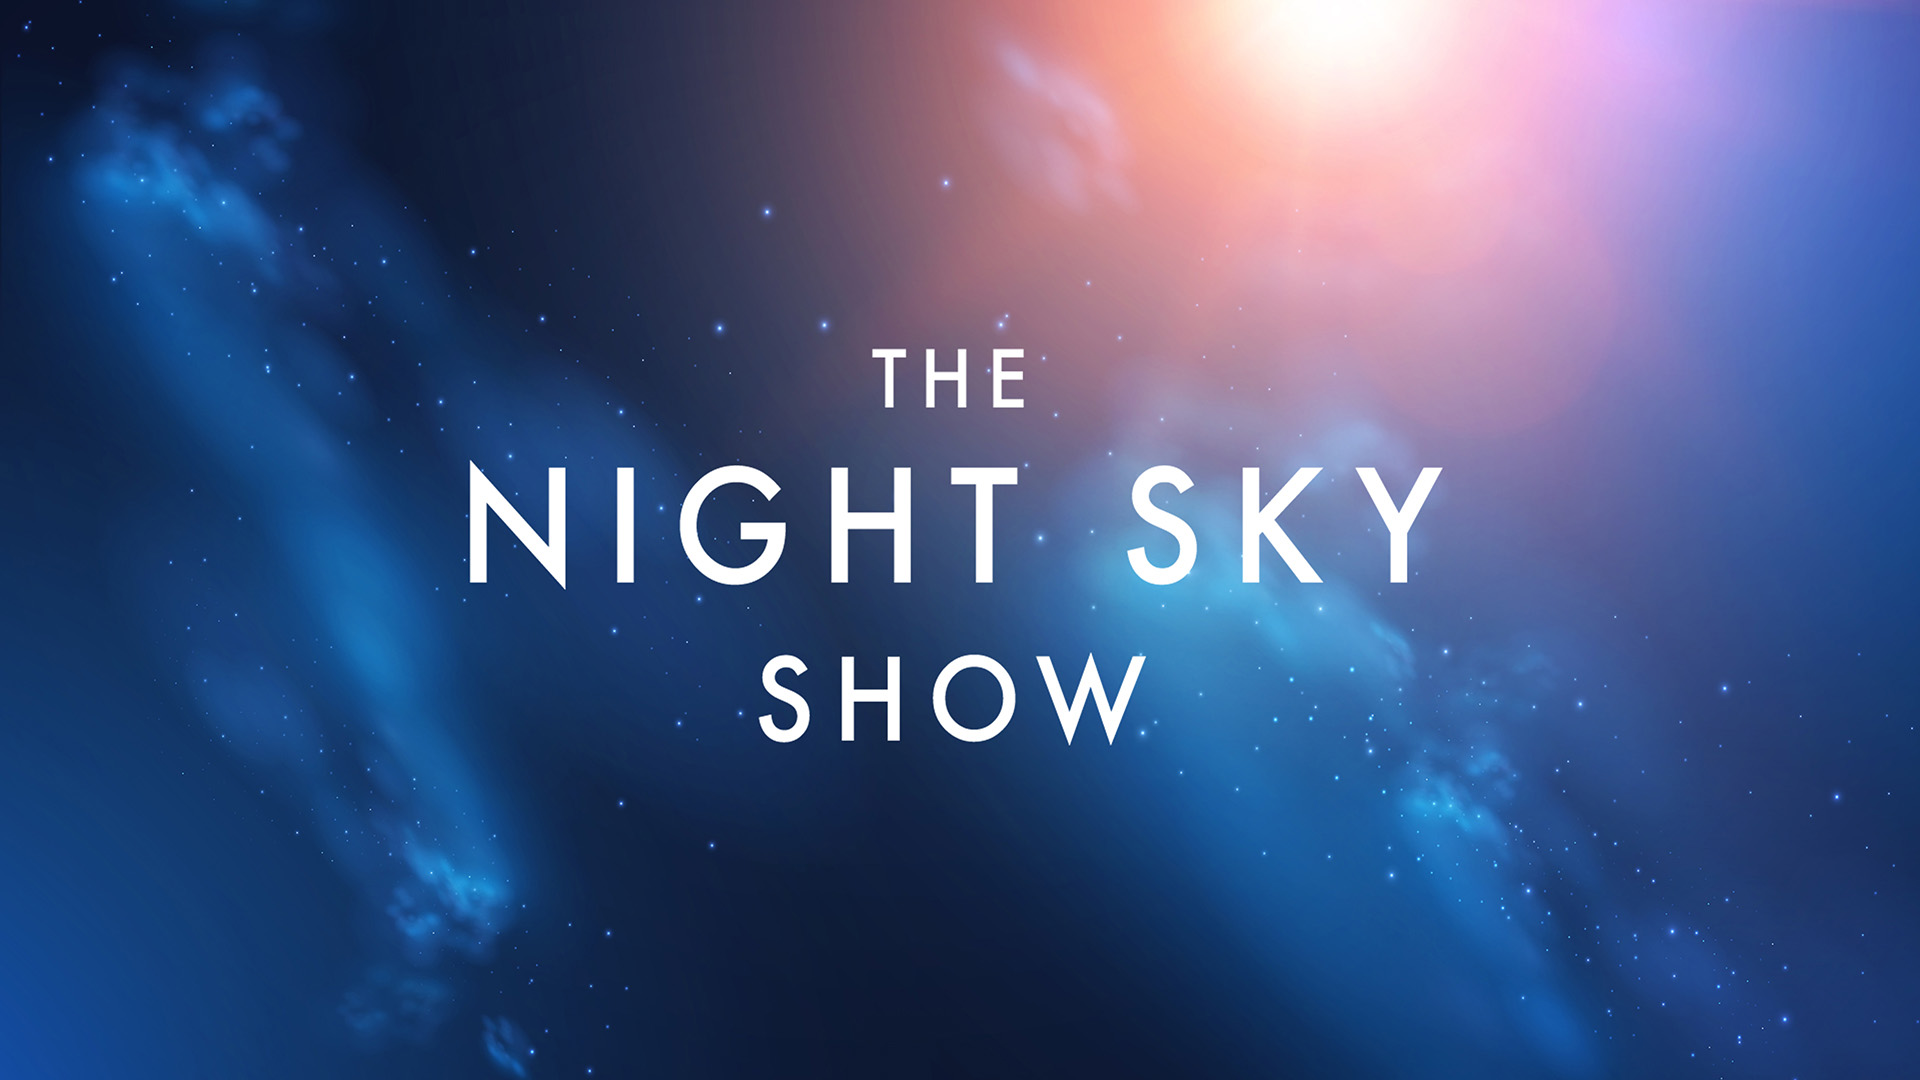 The Night Sky Show promotional image